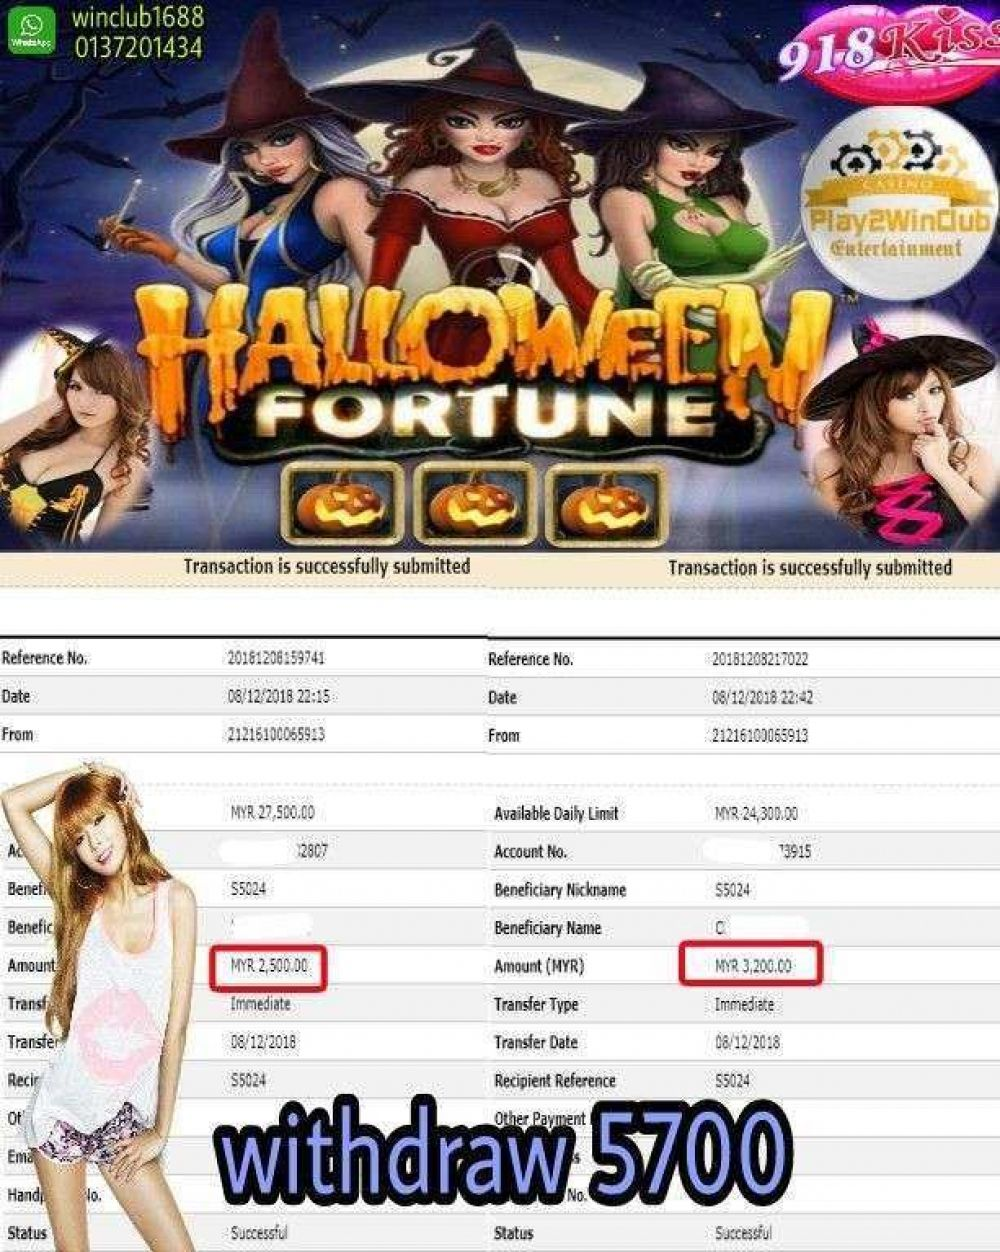 Love Playing Slot Games Online Casino   SCR888 918kiss XE88   Online Casino Malaysia…